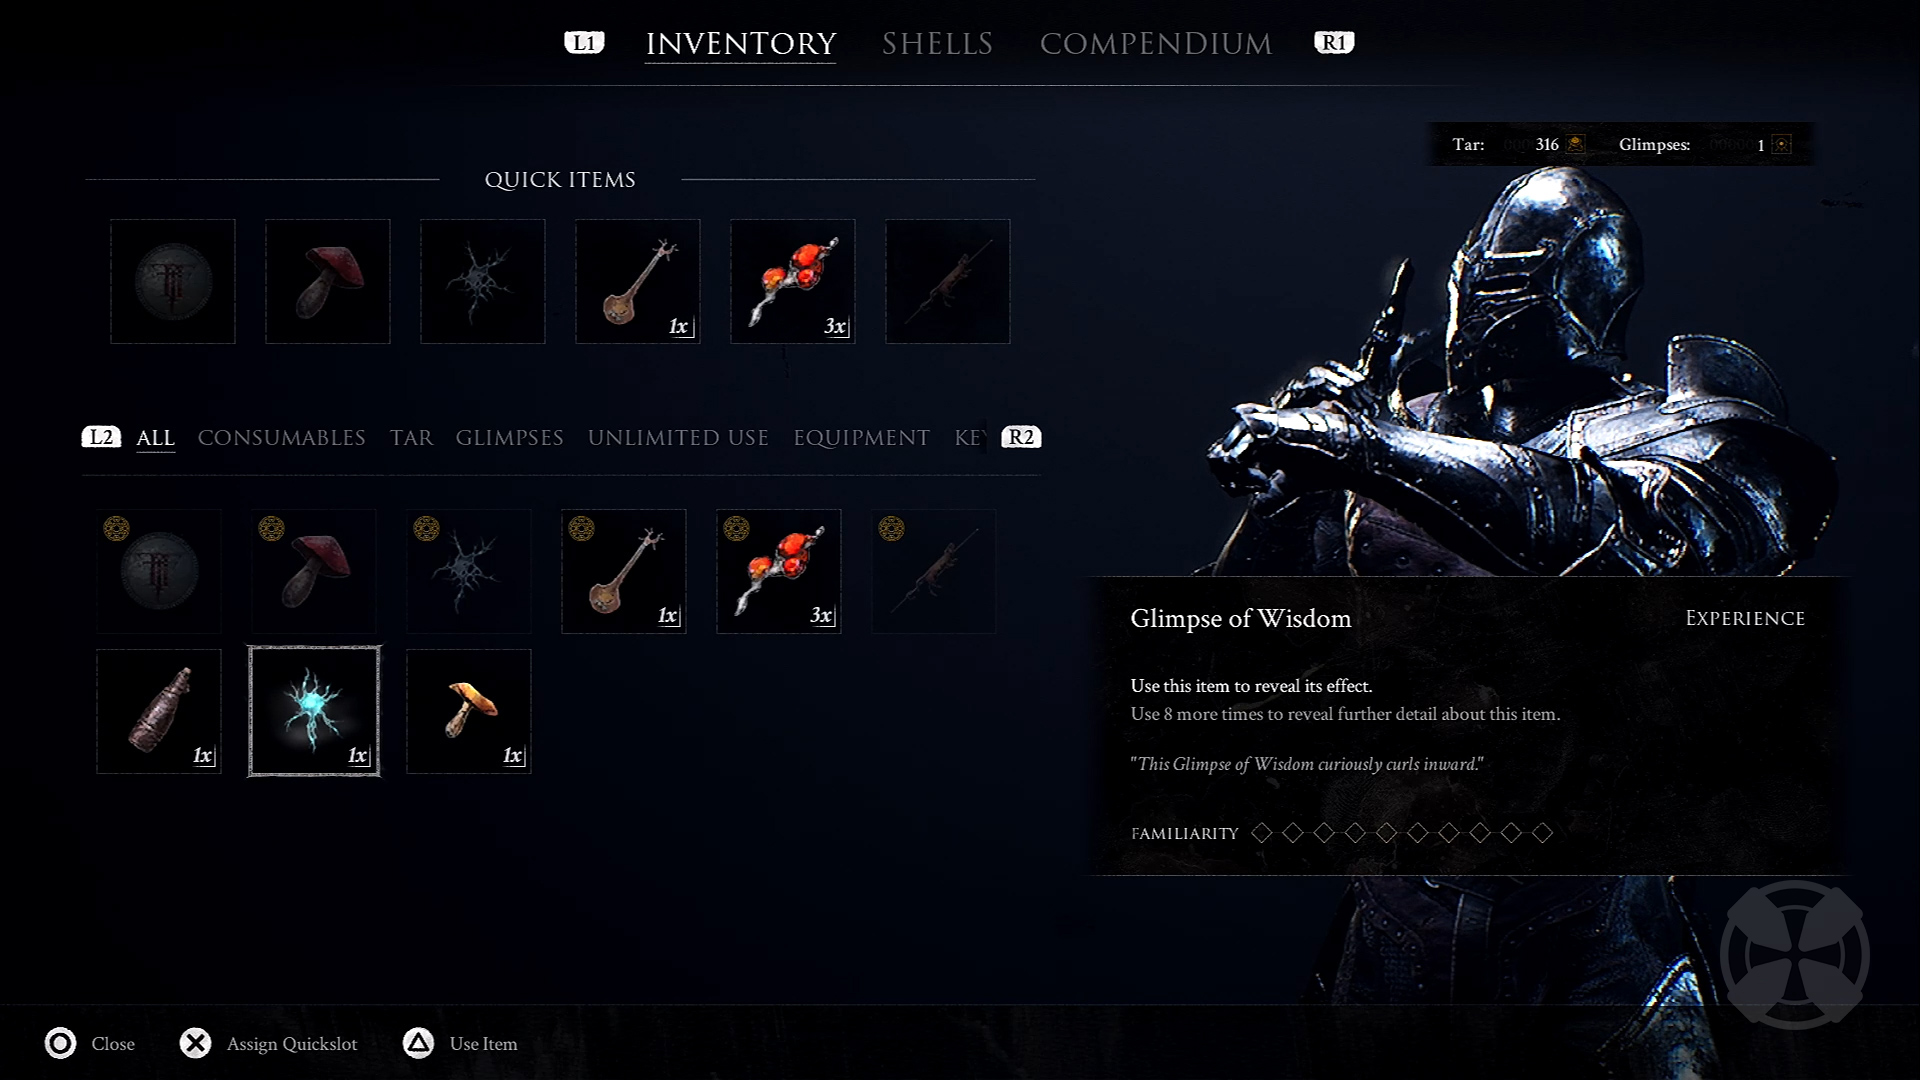 Image of Mortal Shell's inventory screen.